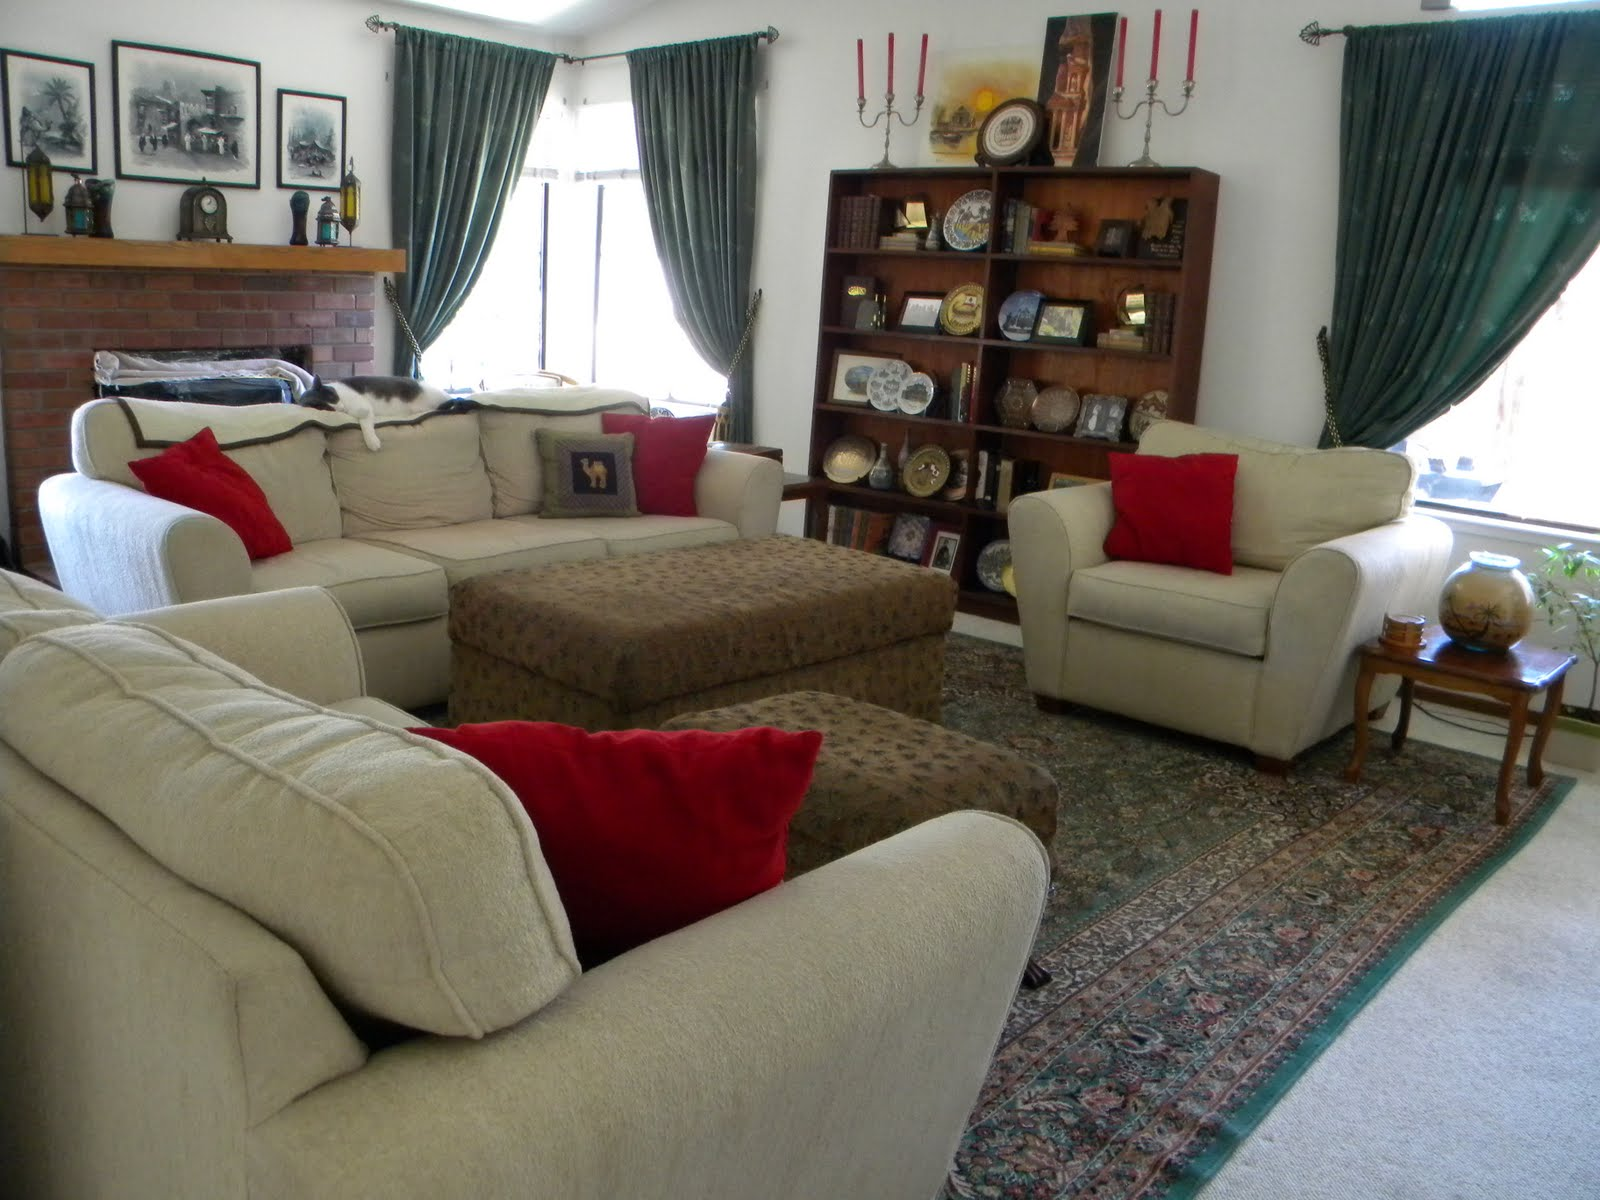 daze of grace: Our British Colonial Style Living Room